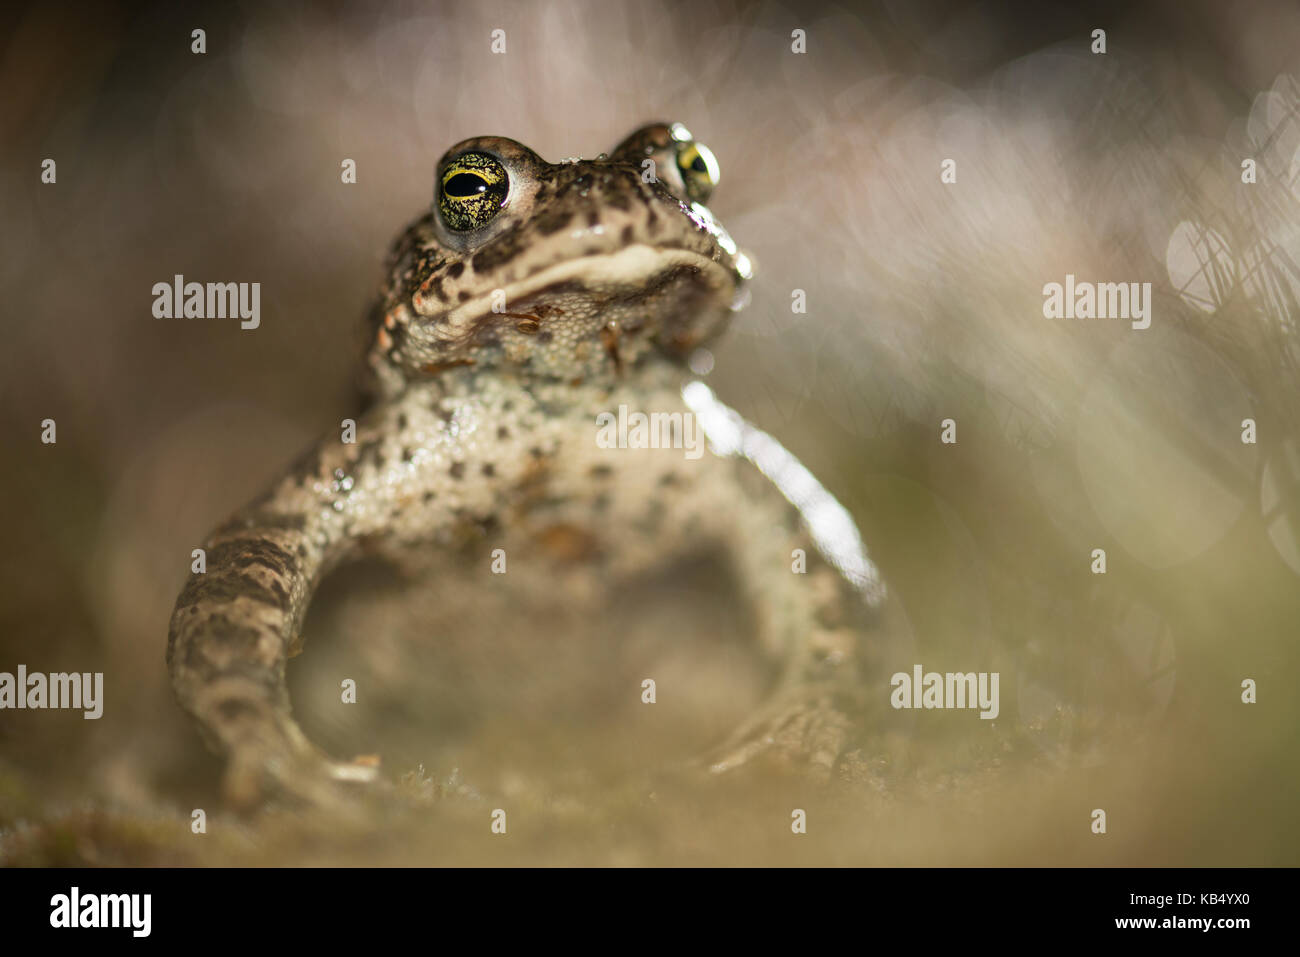 Natterjack Toad (Epidalea calamita) male in backlight between patches of Grey hair-grass, The Netherlands, Limburg, - Stock Image